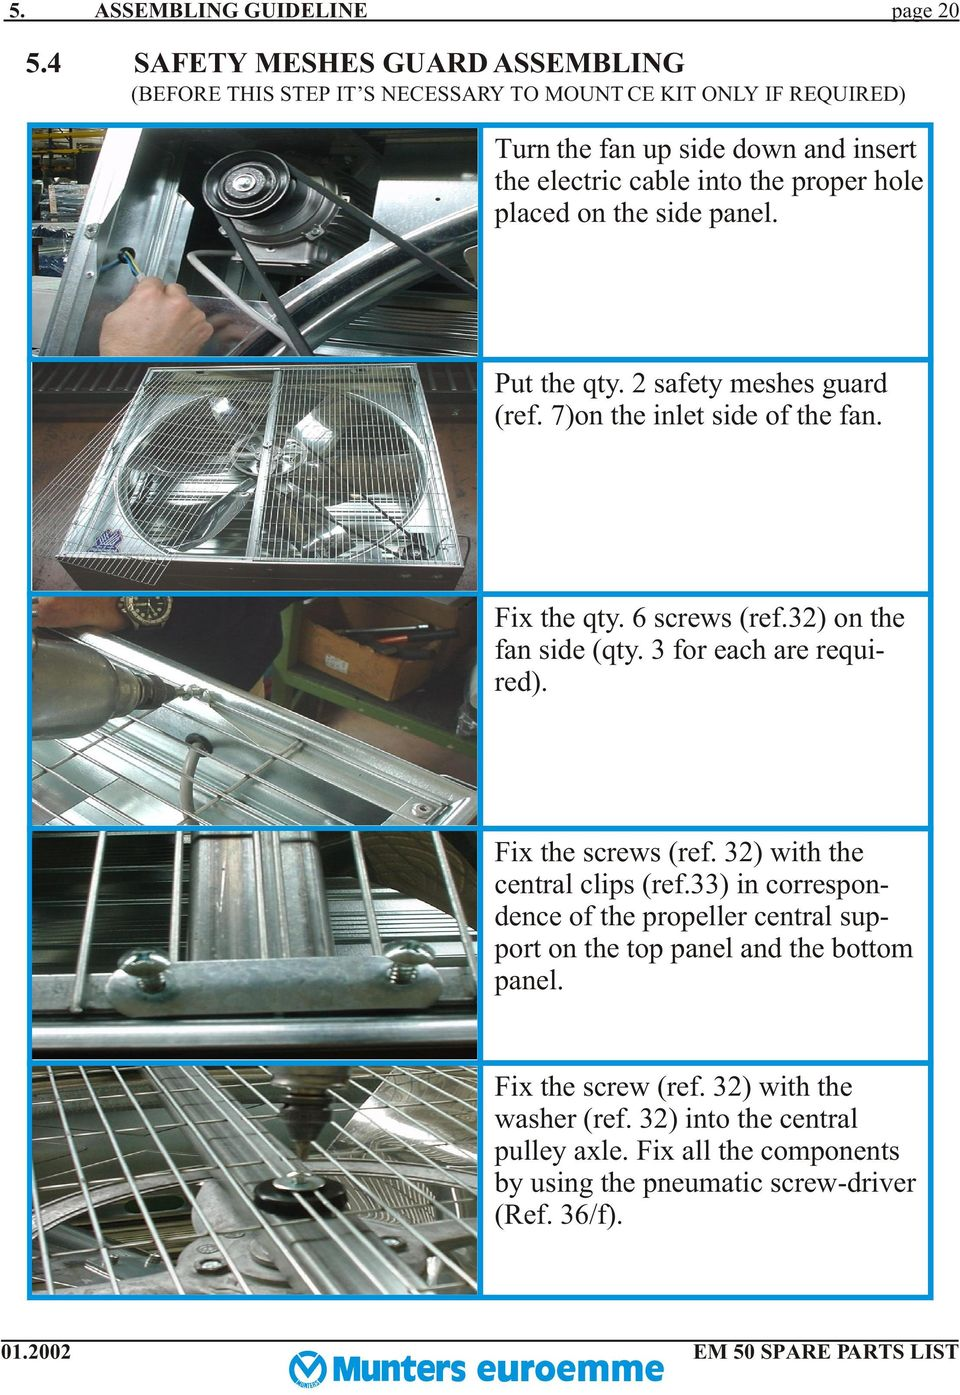 Spare Parts List And Assembling Guideline For Em 50 Fan Pdf 2002 Mini Cooper S Engine Diagram Placed On The Side Panel Put Qty Safety Meshes Guard Ref